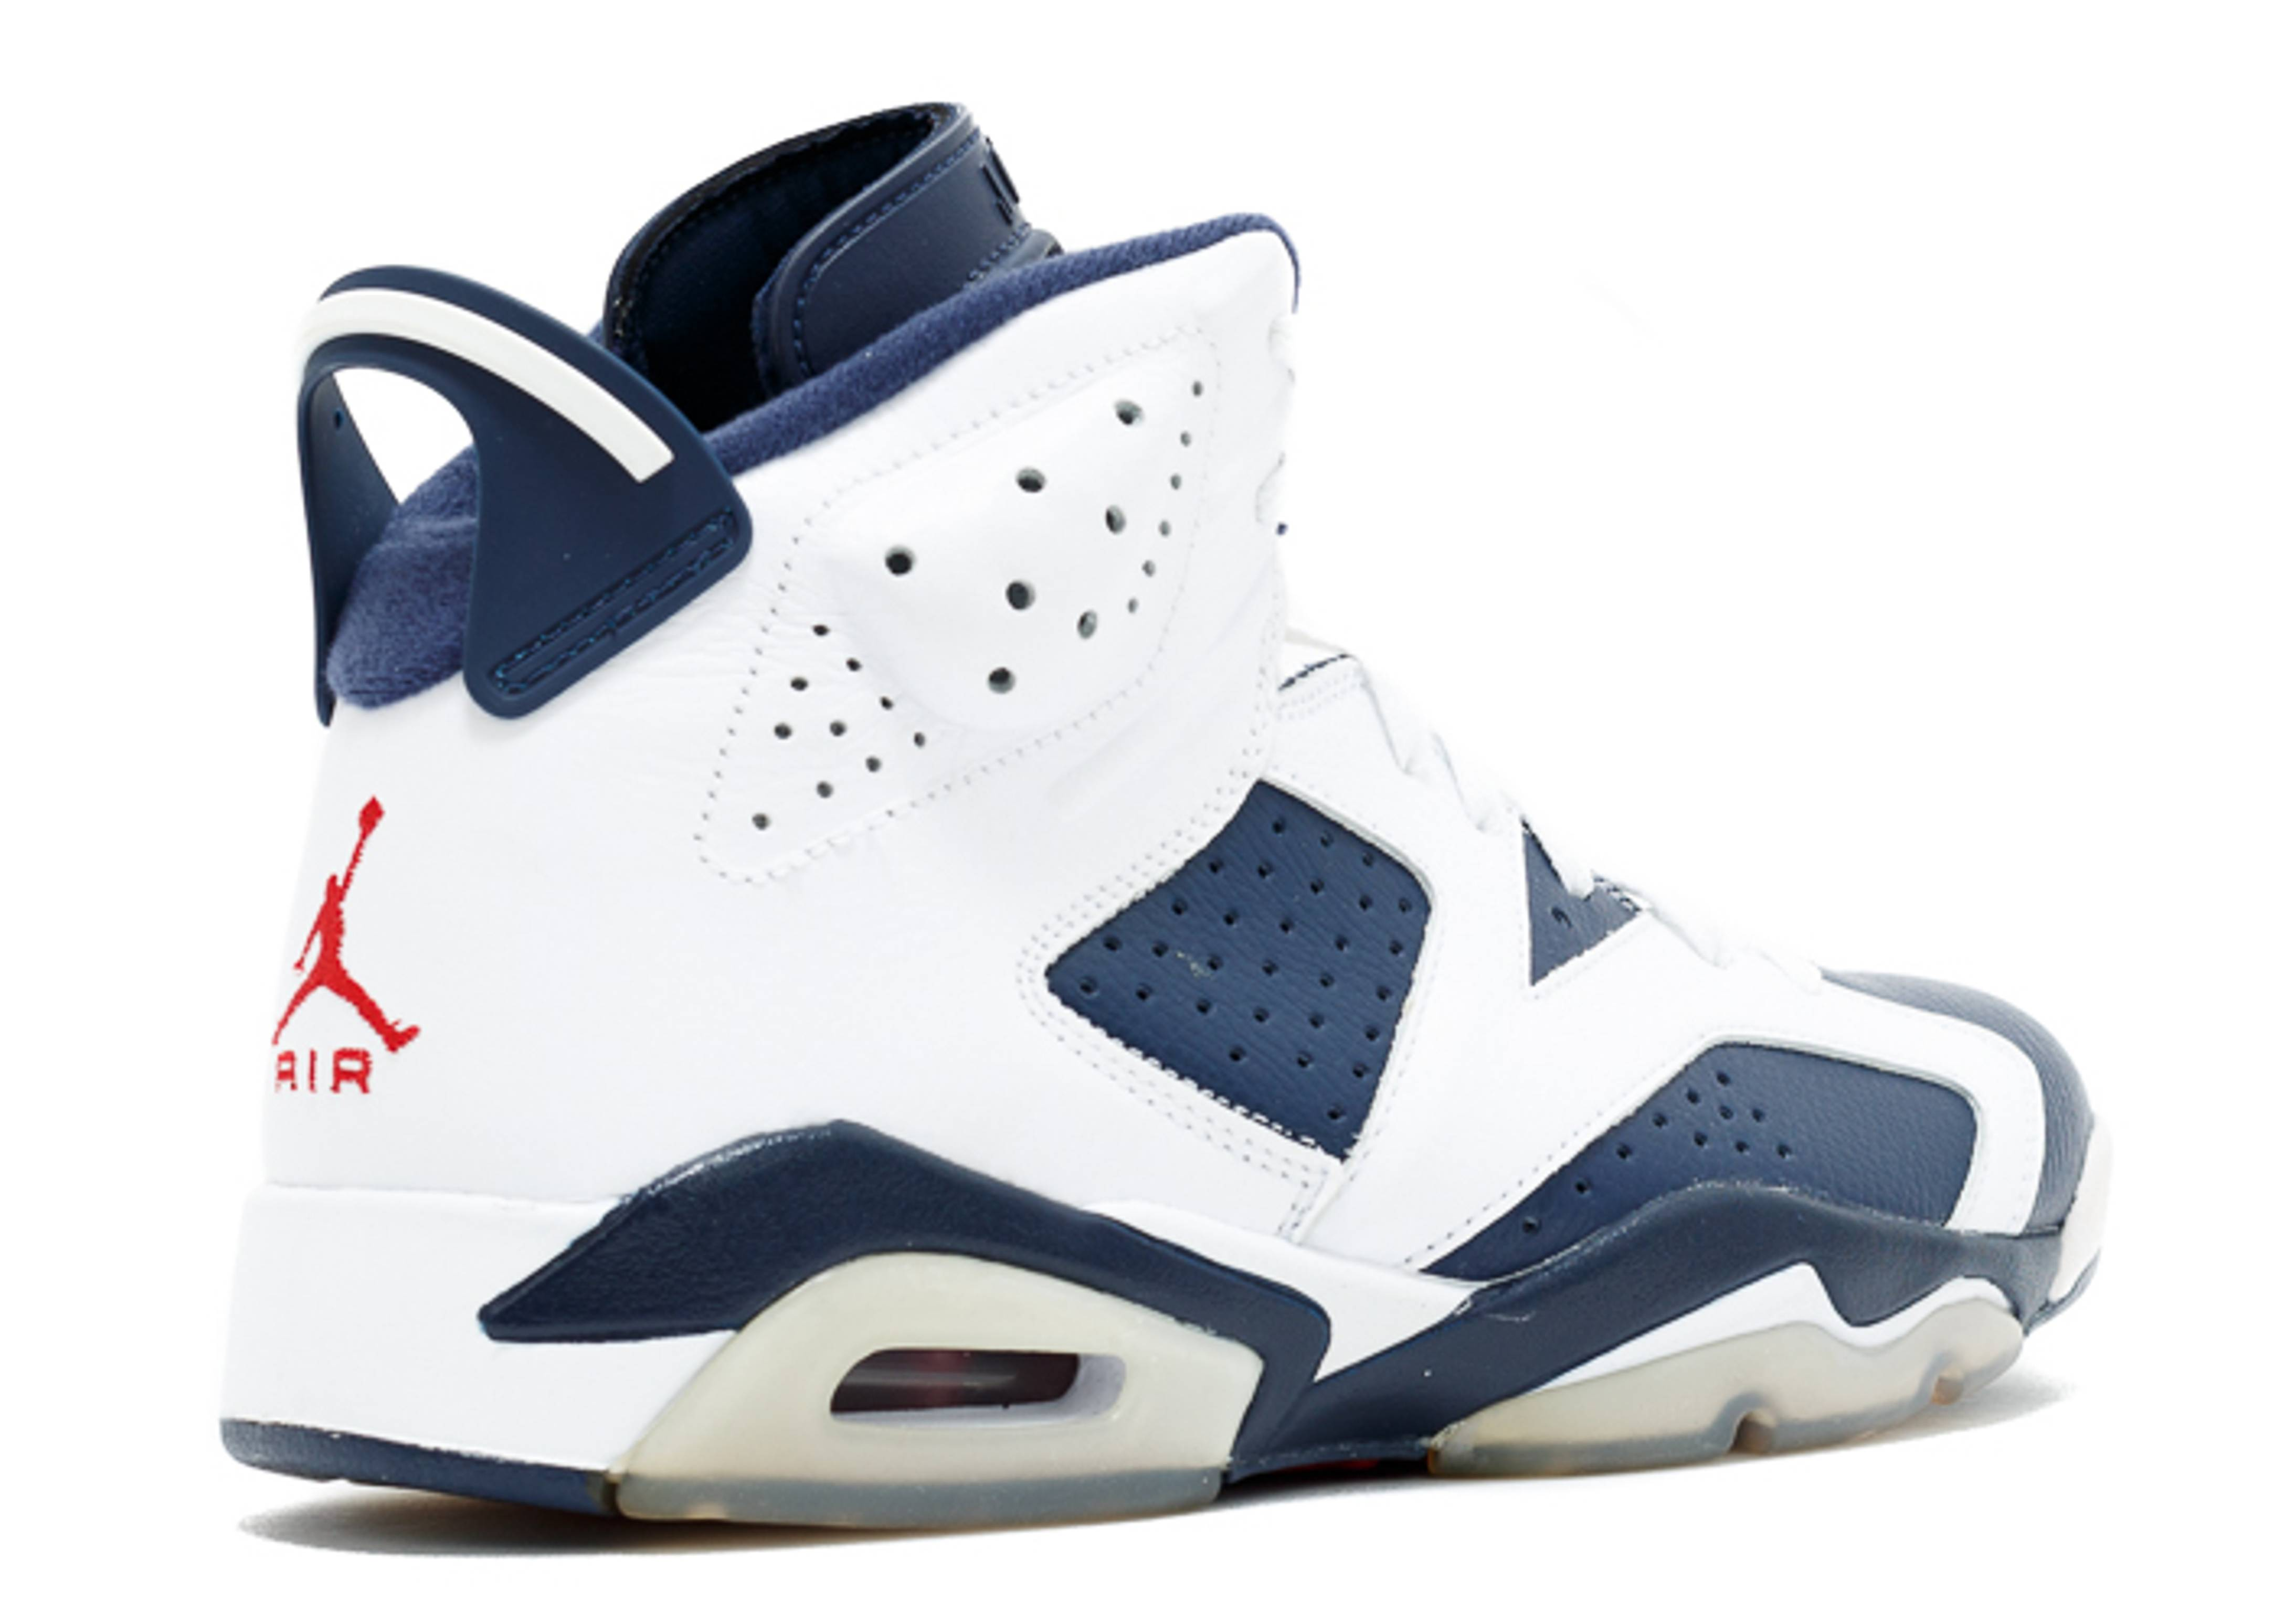 air jordan 6 olympic 2012 for sale